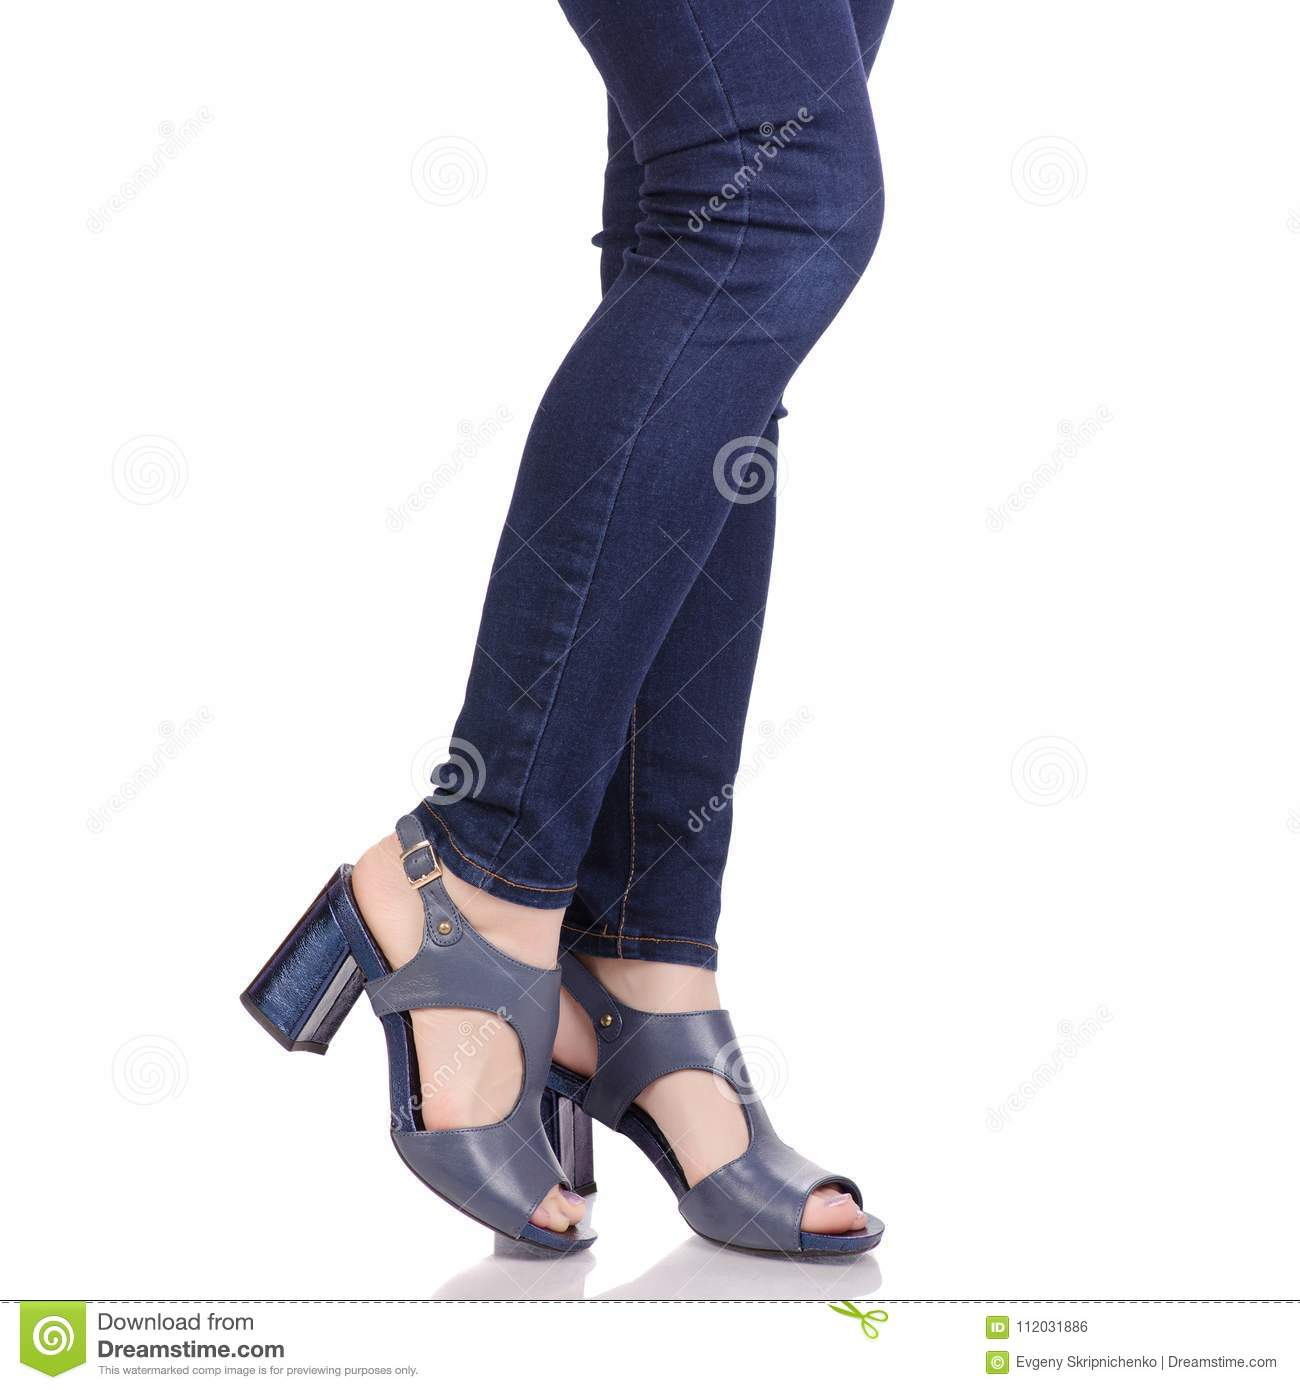 2ea743f3c Female legs in jeans and in blue sandals shoes fashion beauty shop buy on  white background isolation